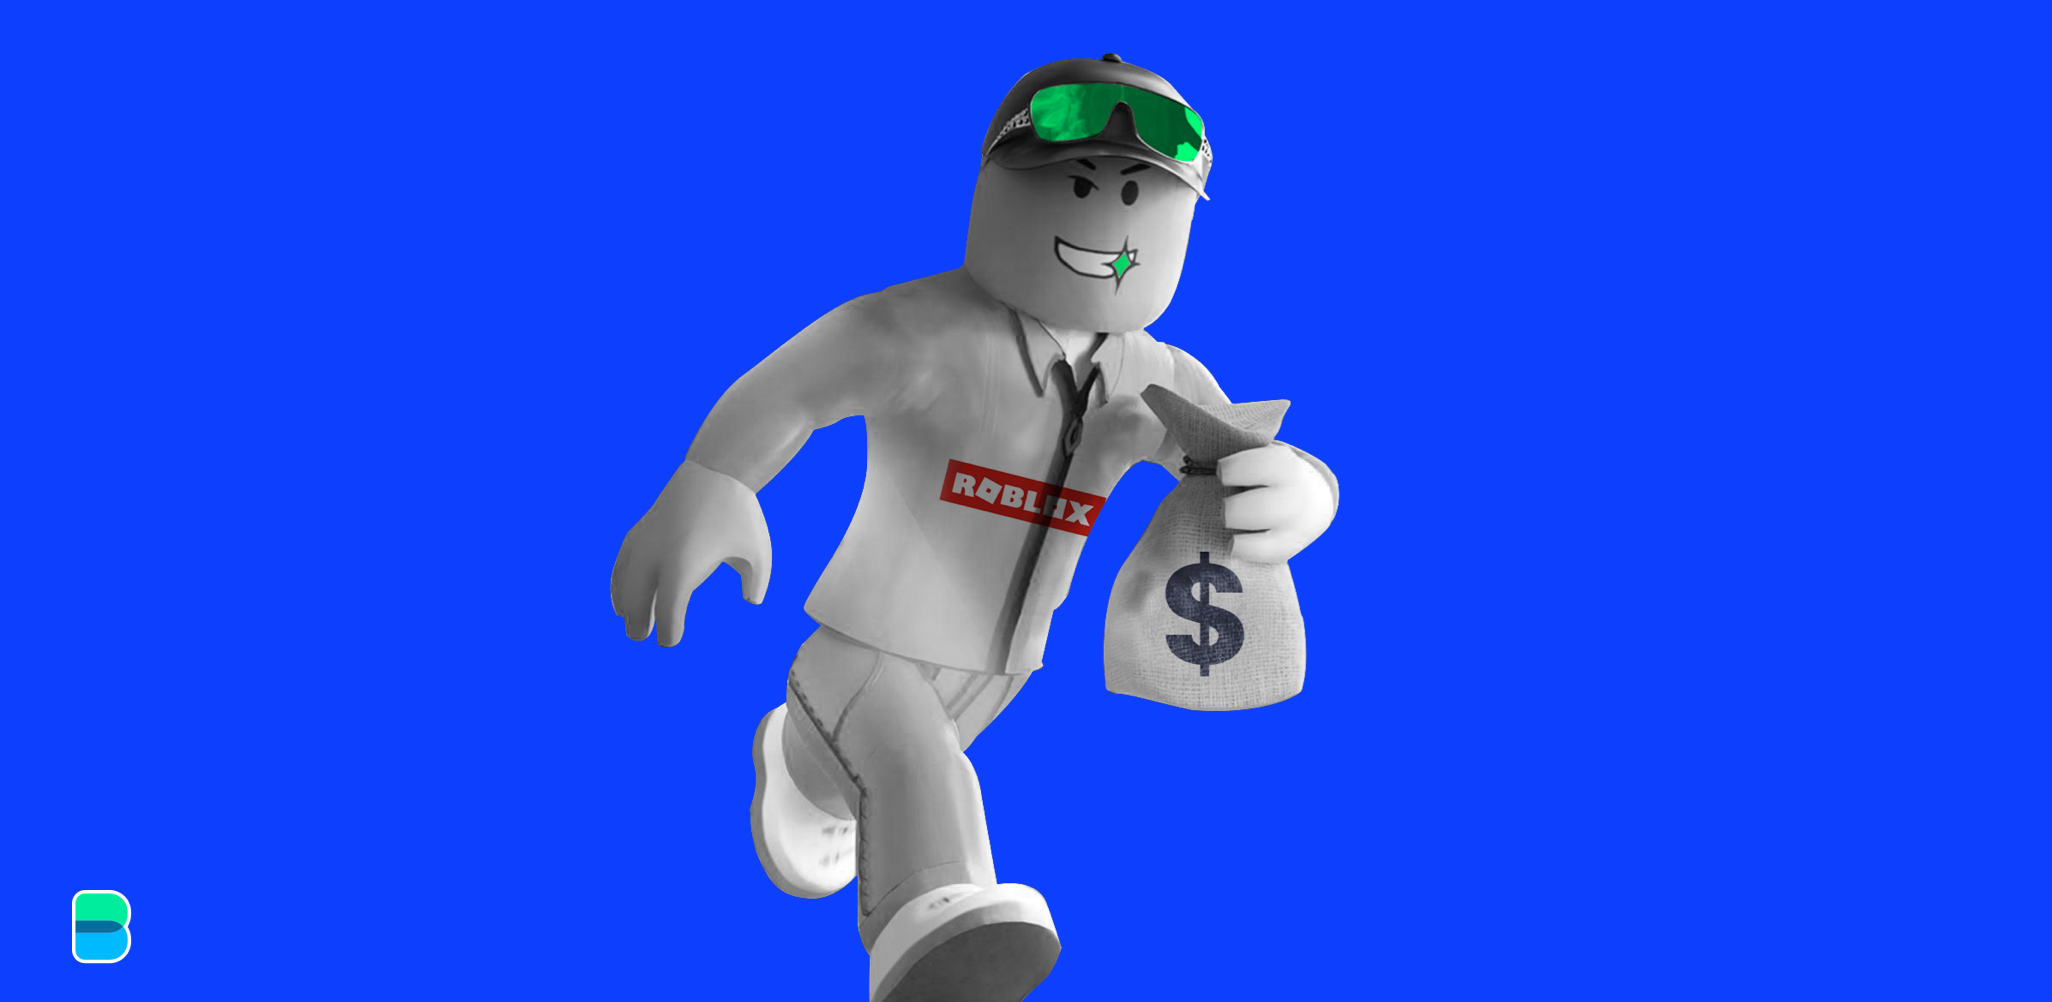 Roblox levels-up valuation at USD 29.5b